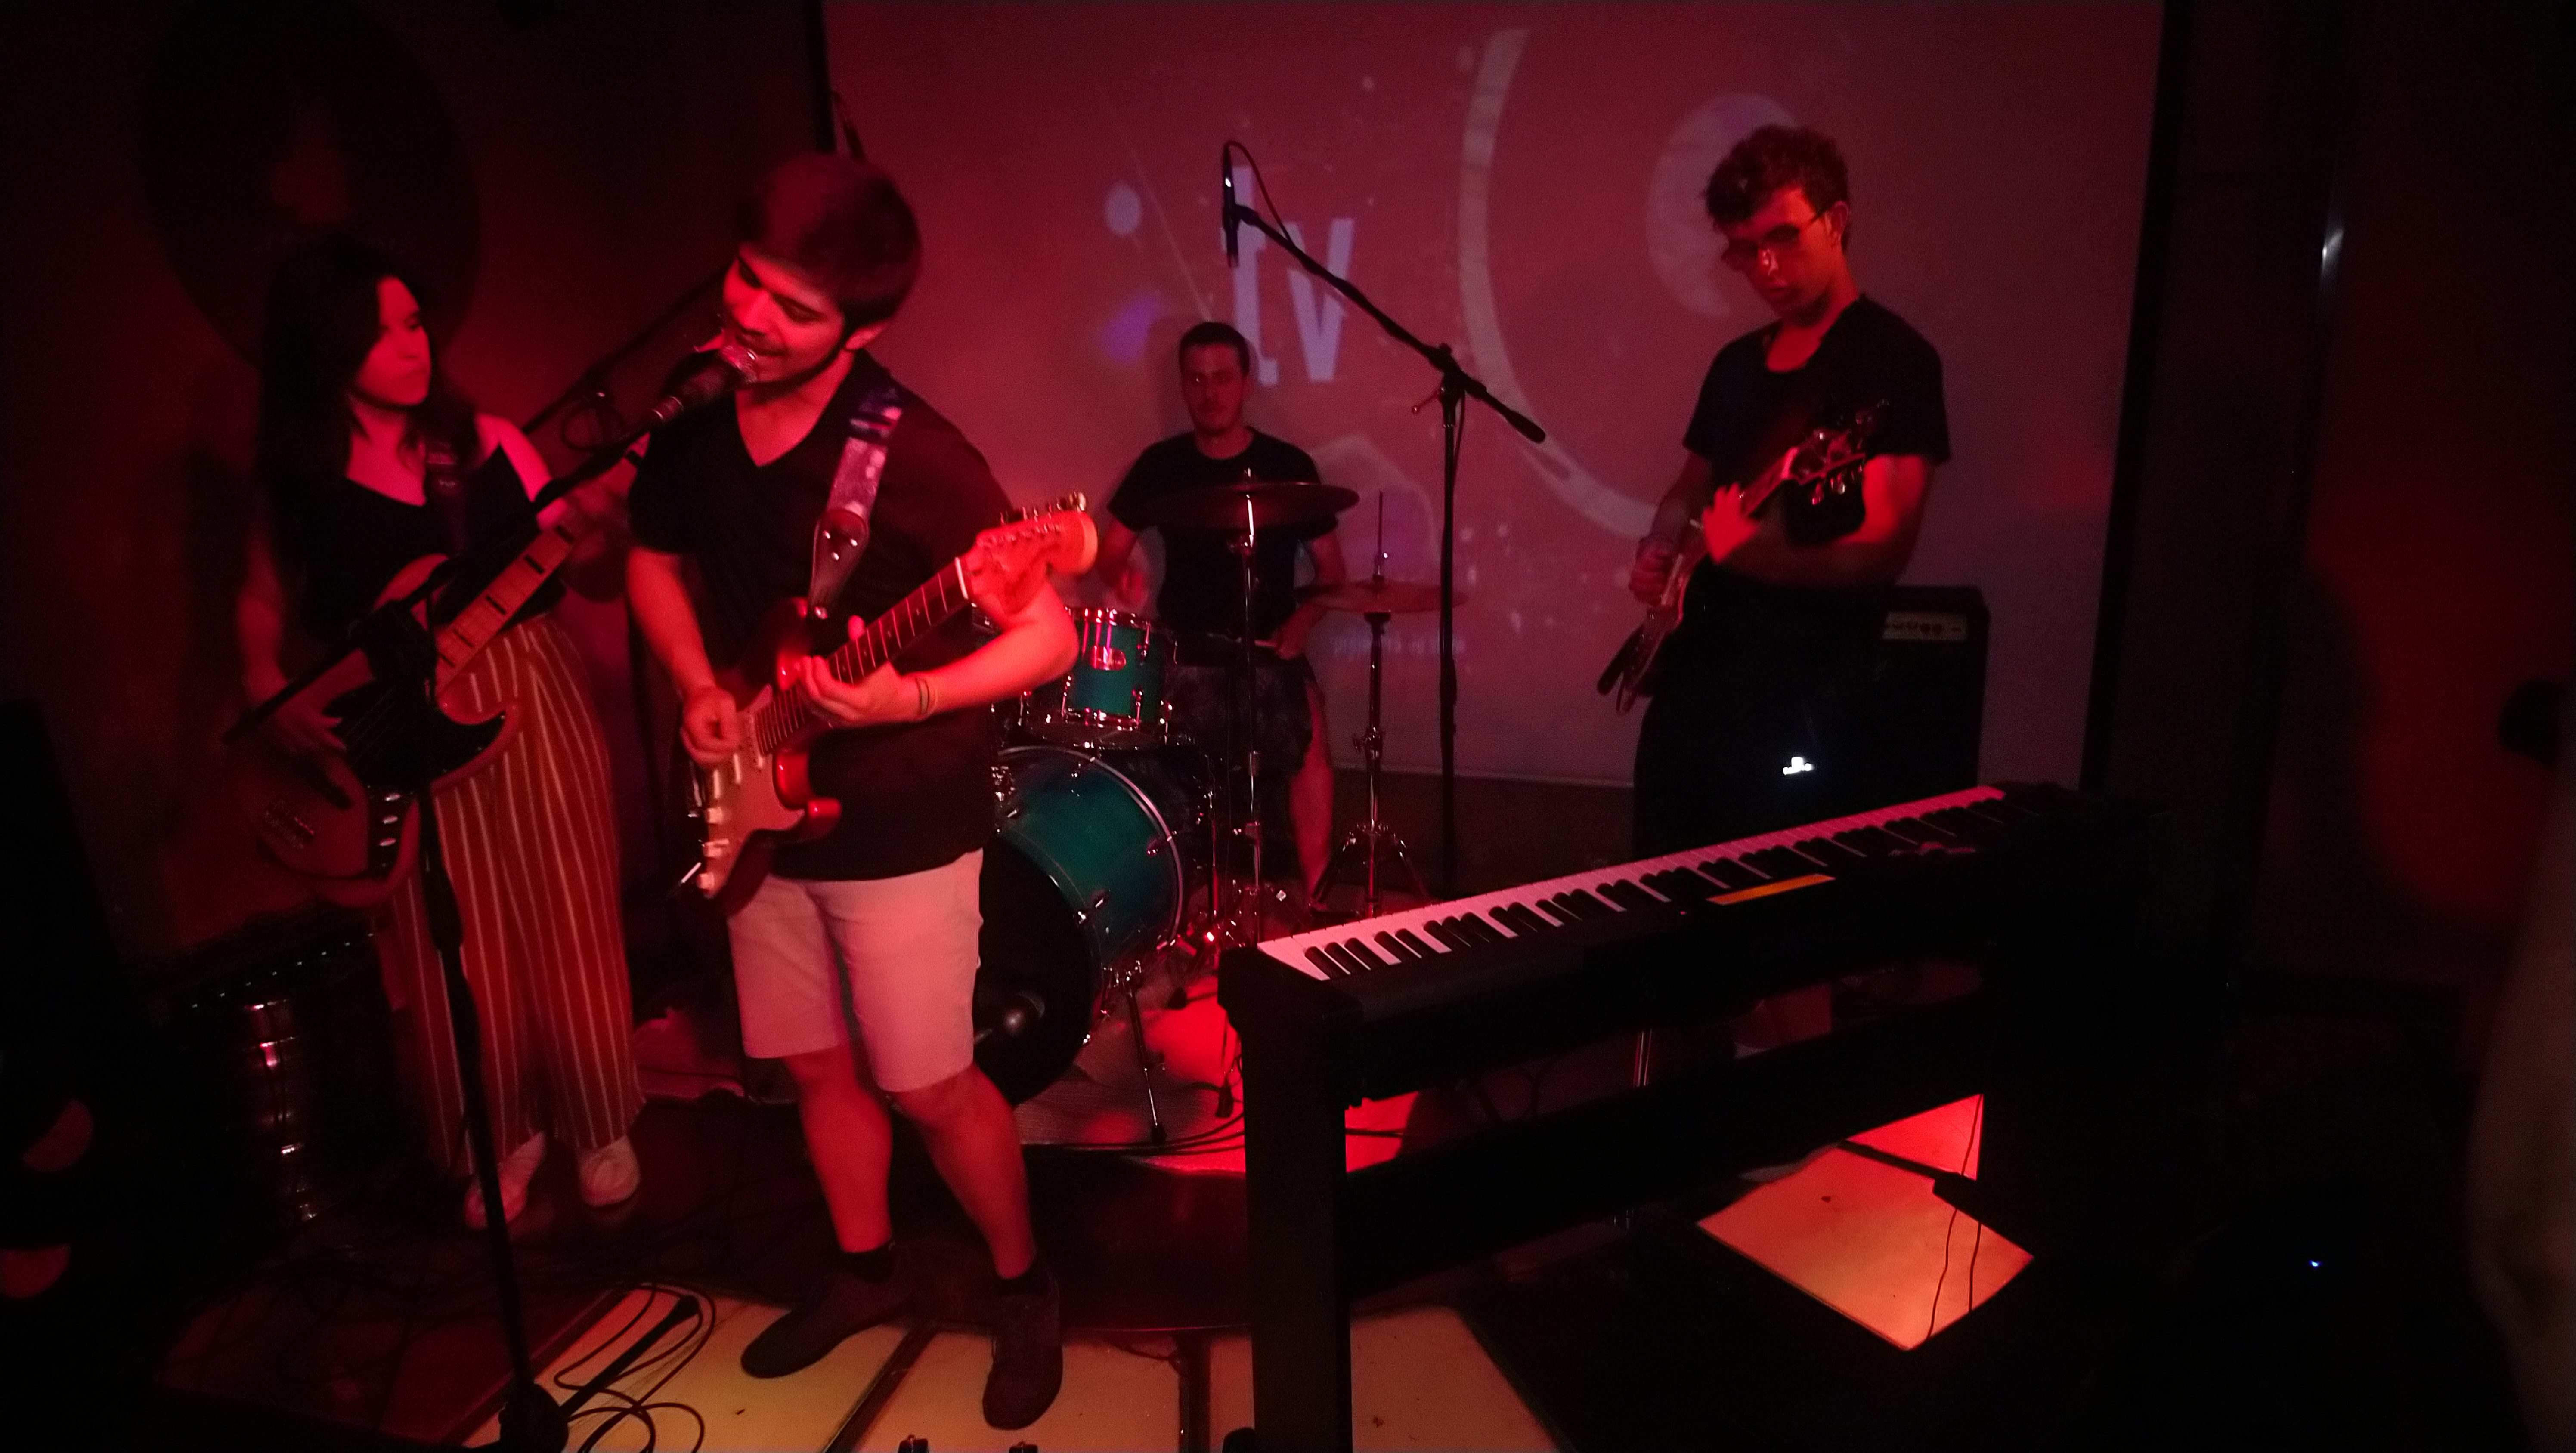 Vivo Rock En Concierto: The Blue Cabin